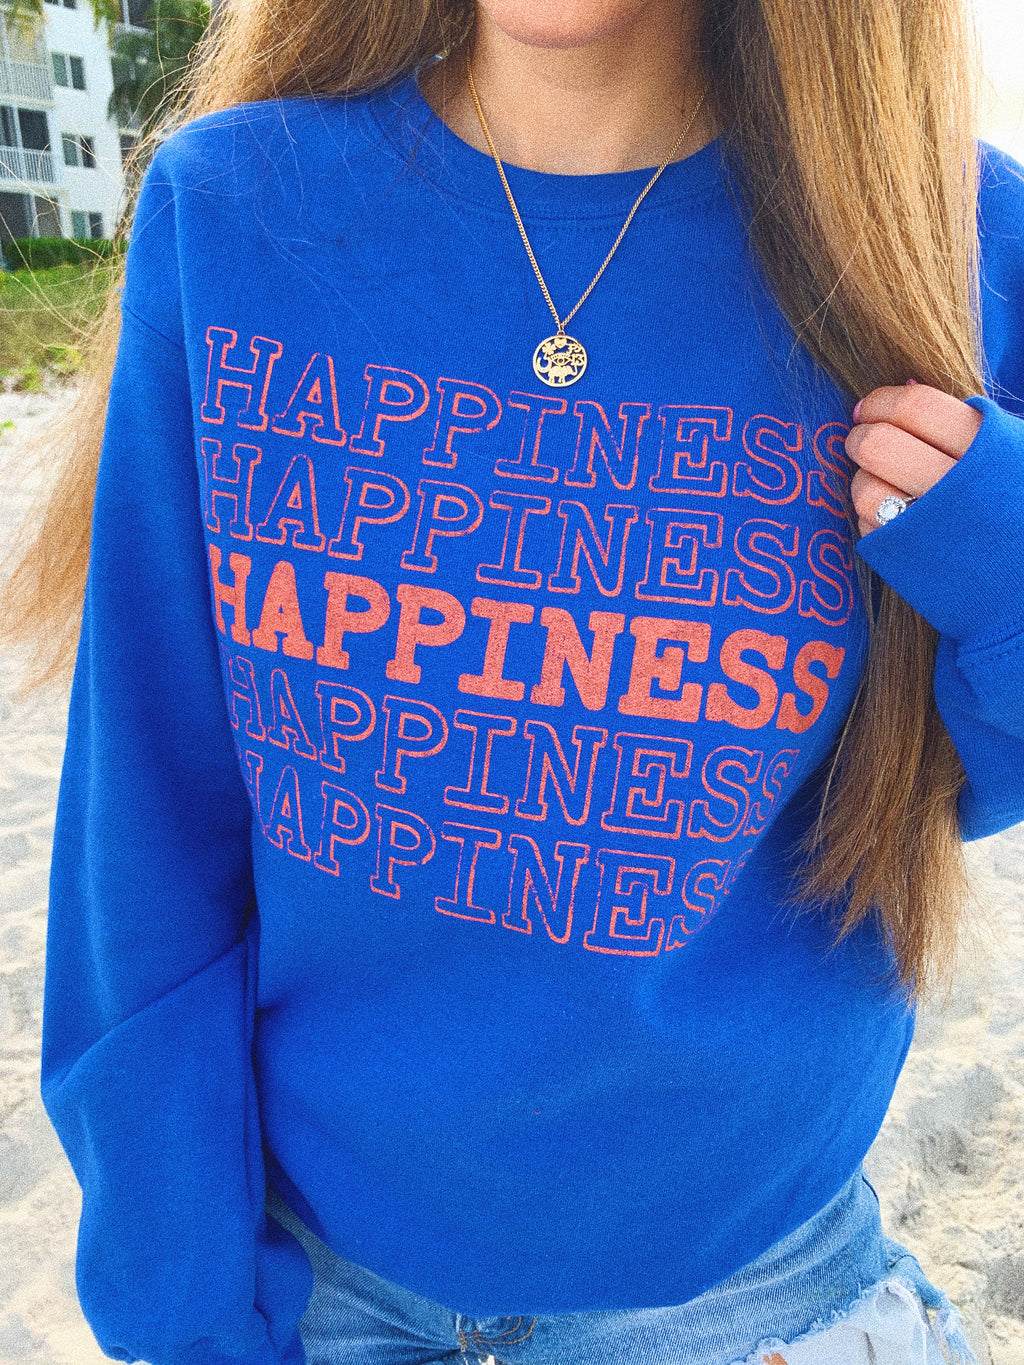 This cute Stay Positive tee is perfect to let everyone know that you're all about the positive vibes! This positive tee is great as a motivational shirt to spread positivity and love!